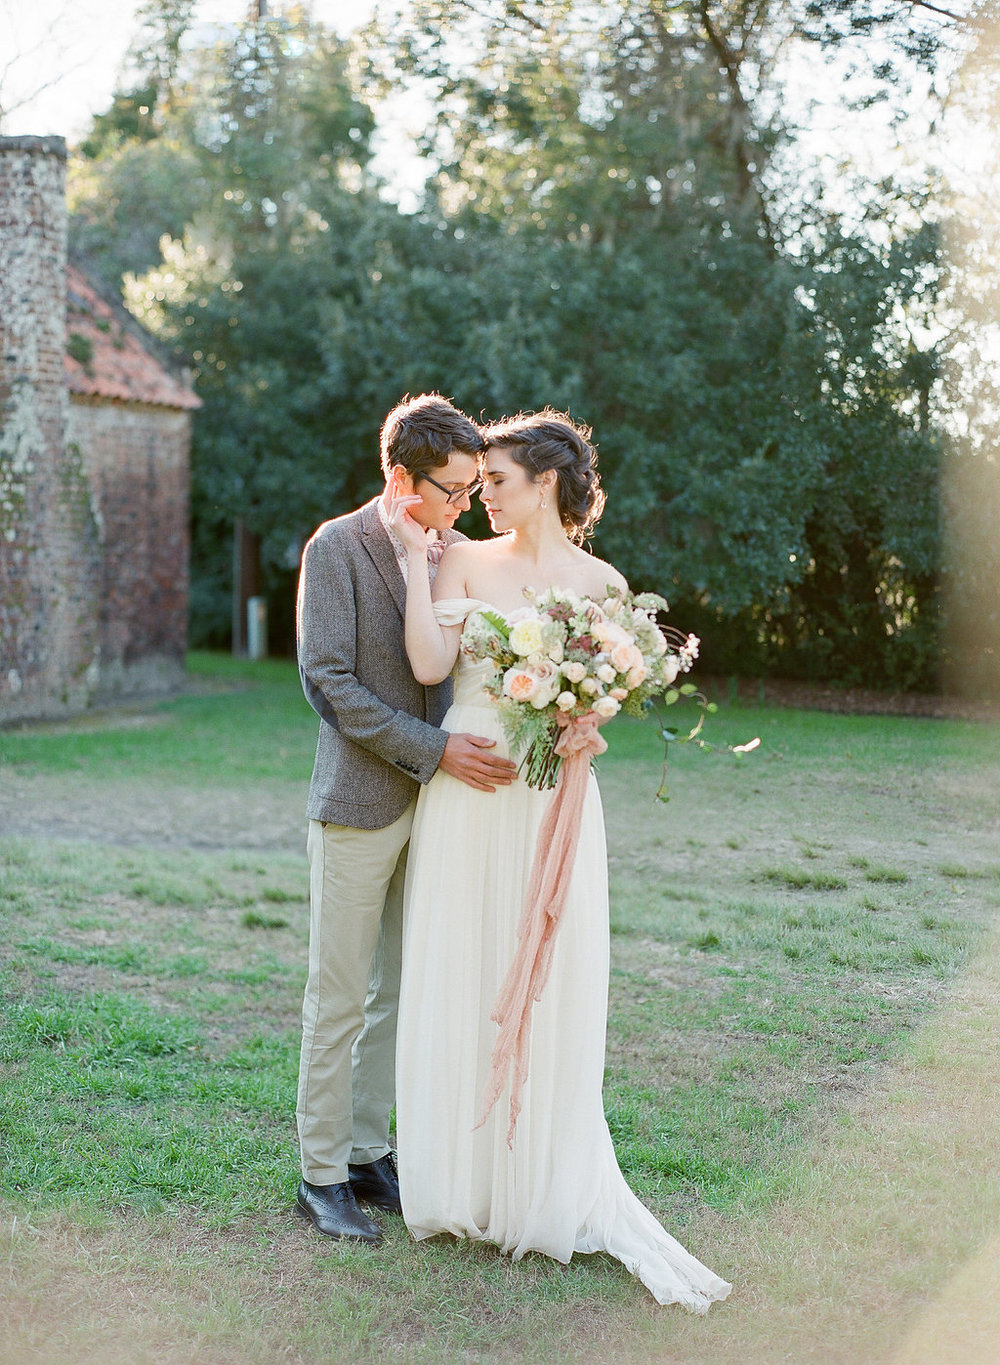 the-happy-bloom-ivory-and-beau-bridal-boutique-trendy-bride-magazine-august-floral-design-savannah-bridal-boutique-lafayette-sarah-seven-boone-hall-plantation-wedding-southern-wedding-charleston-wedding-mt-pleasent-wedding-6.jpg